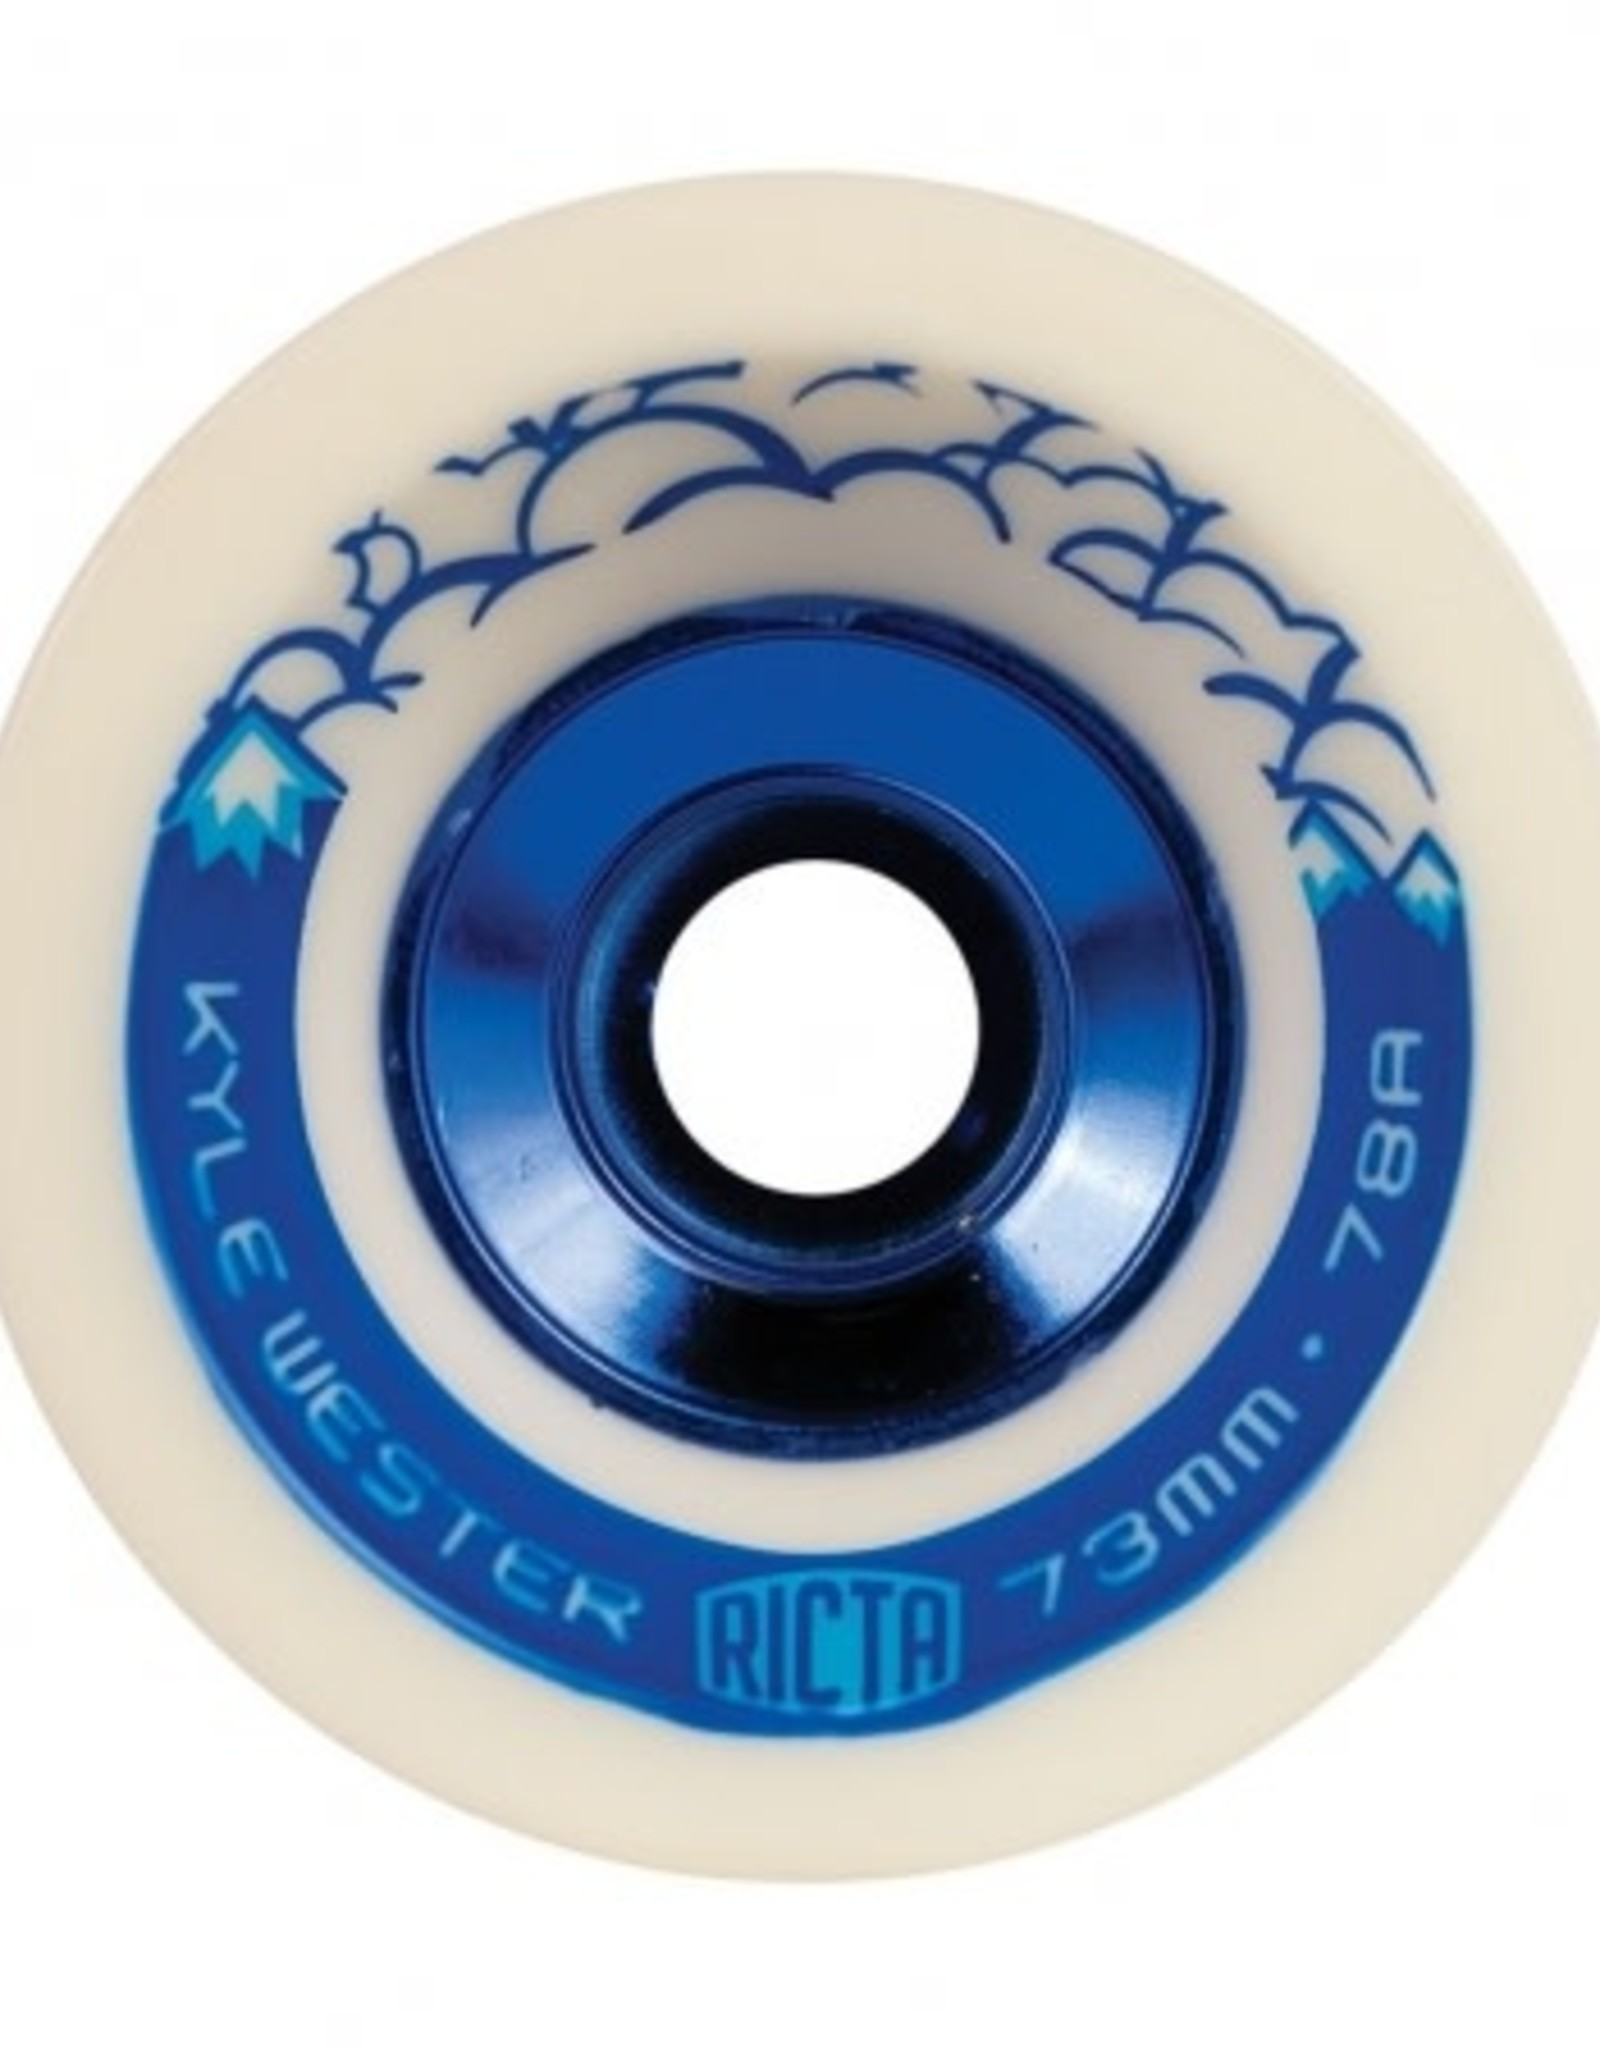 Ricta Wester Storm Cloud Wheels 73mm